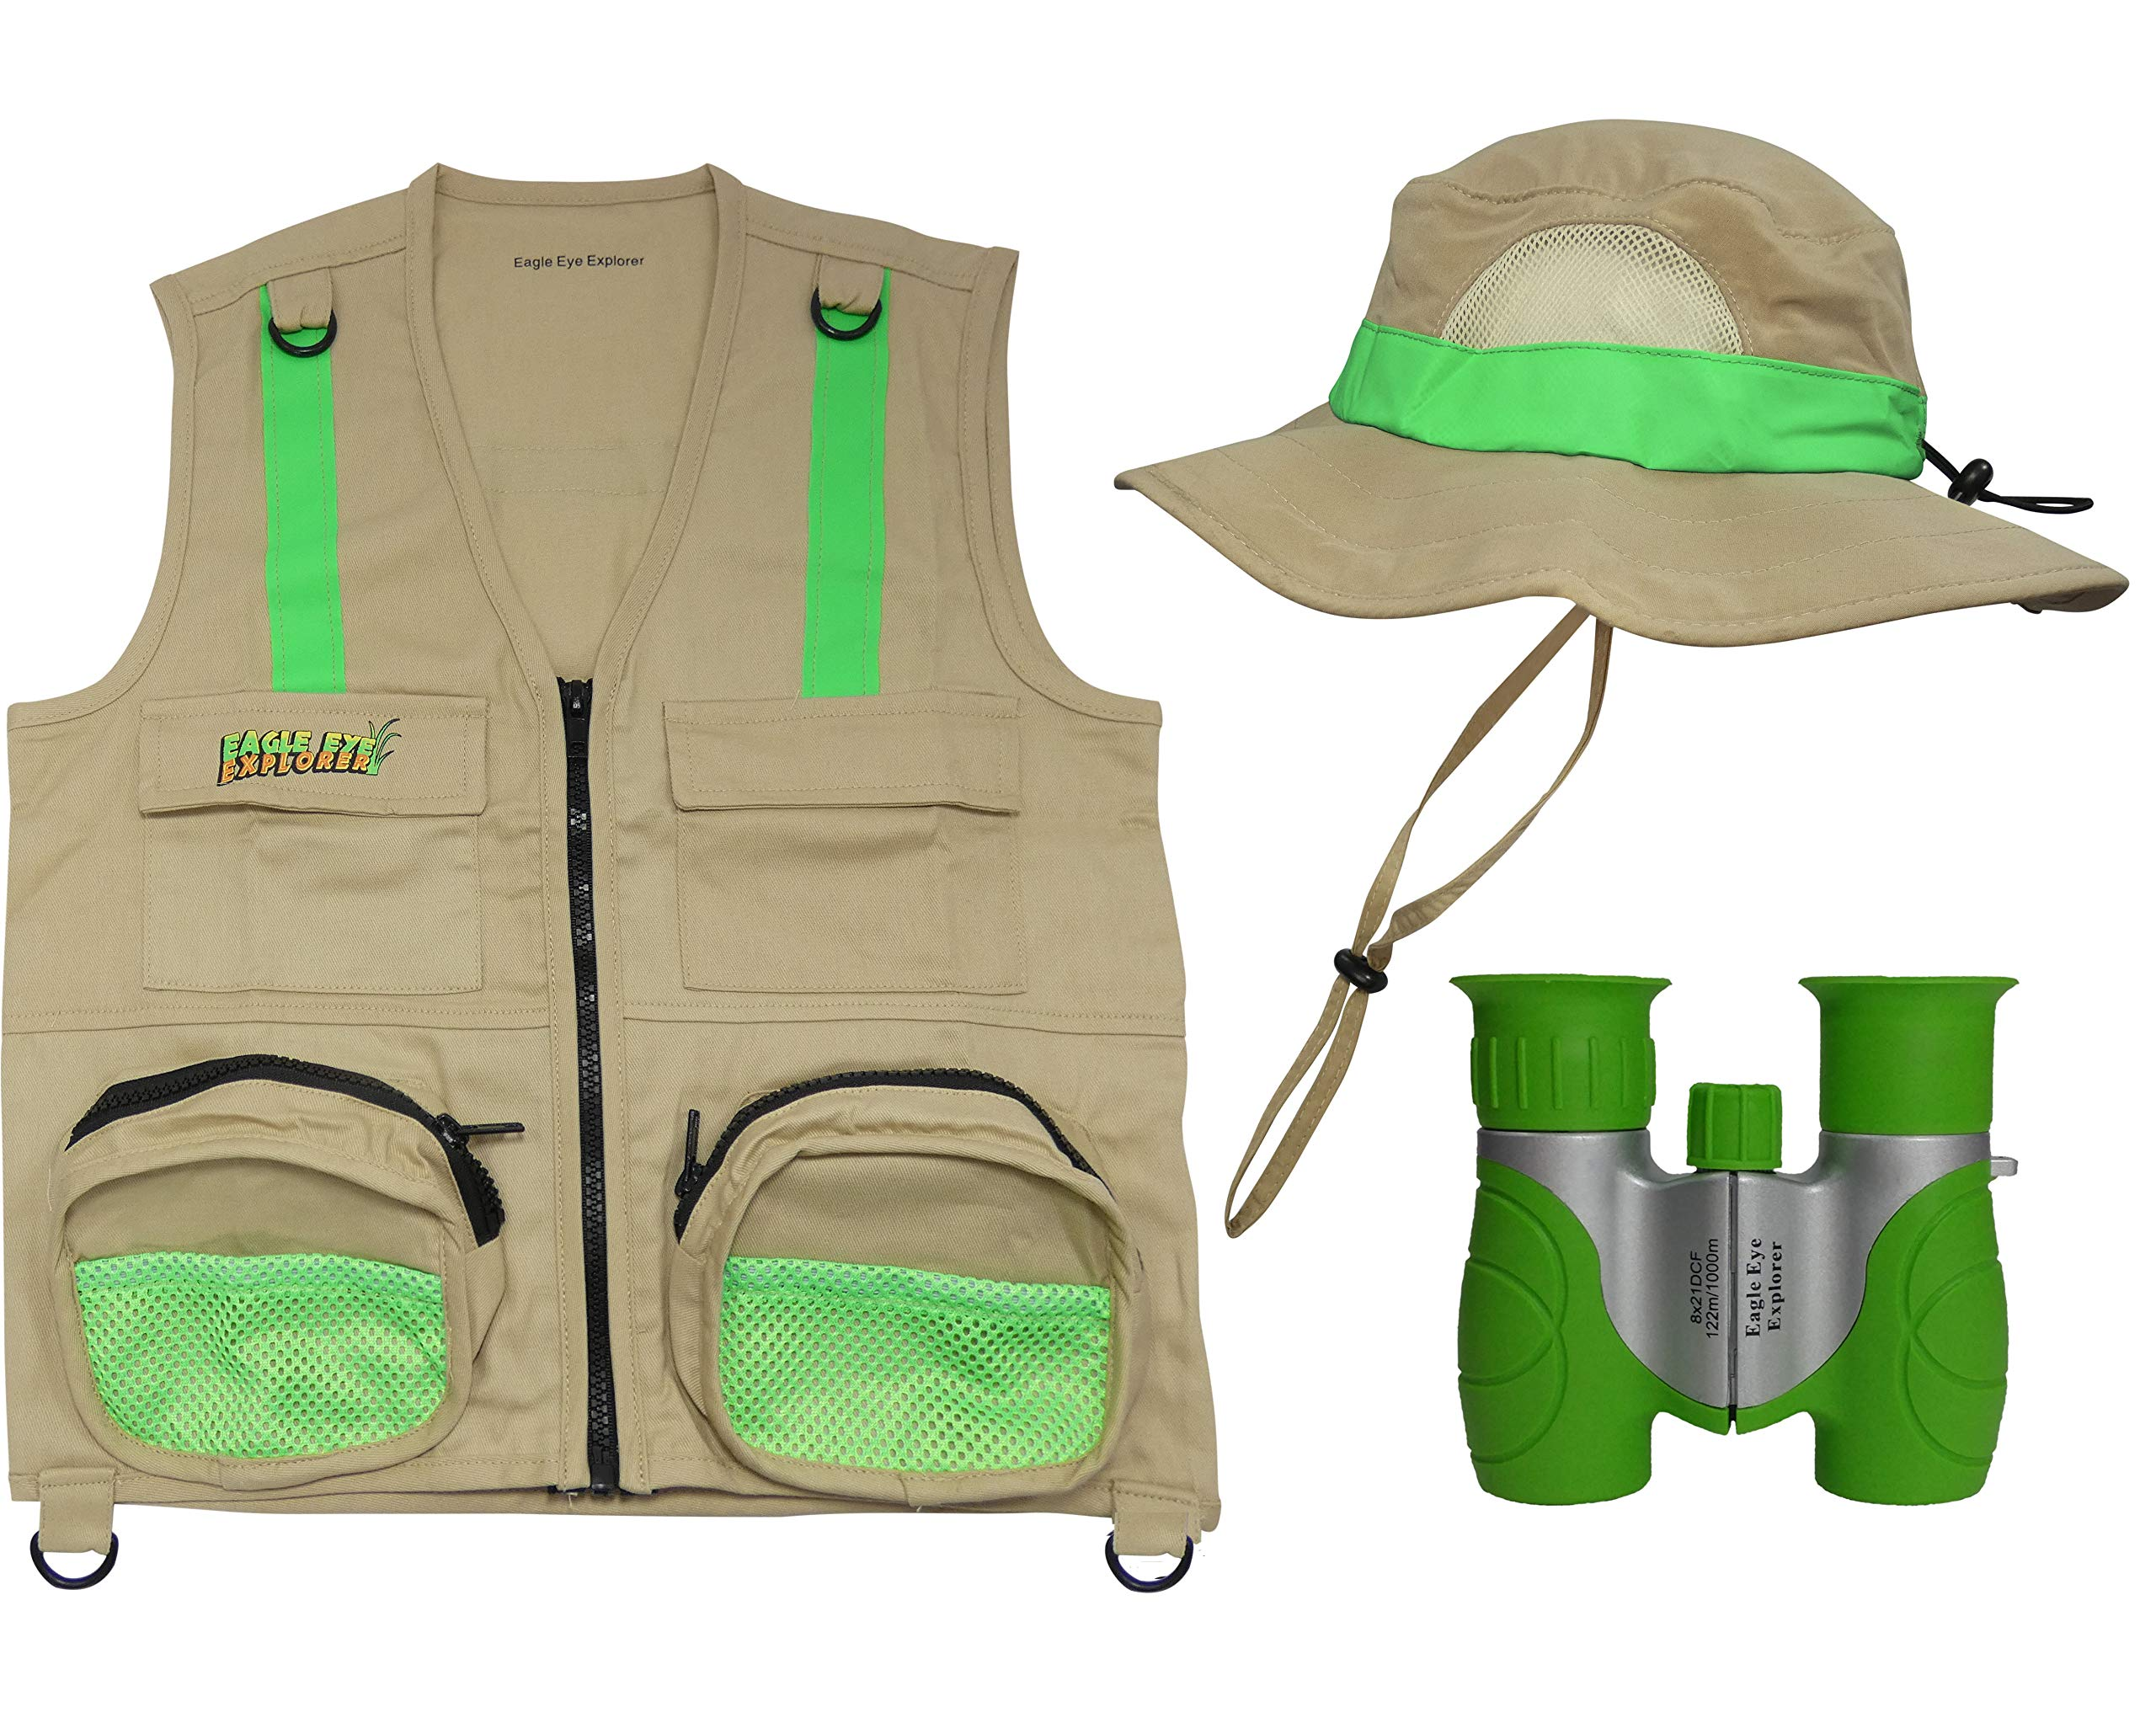 S/M Combination Set: 1 Tan Cargo Vest for Kids with Reflective Safety Straps - 1 Floppy Bucket Hat with Chin Strap - 1 8x21 Power Binoculars with Soft Rubber Eye Piece, Waterproof & Shcok-Resistant